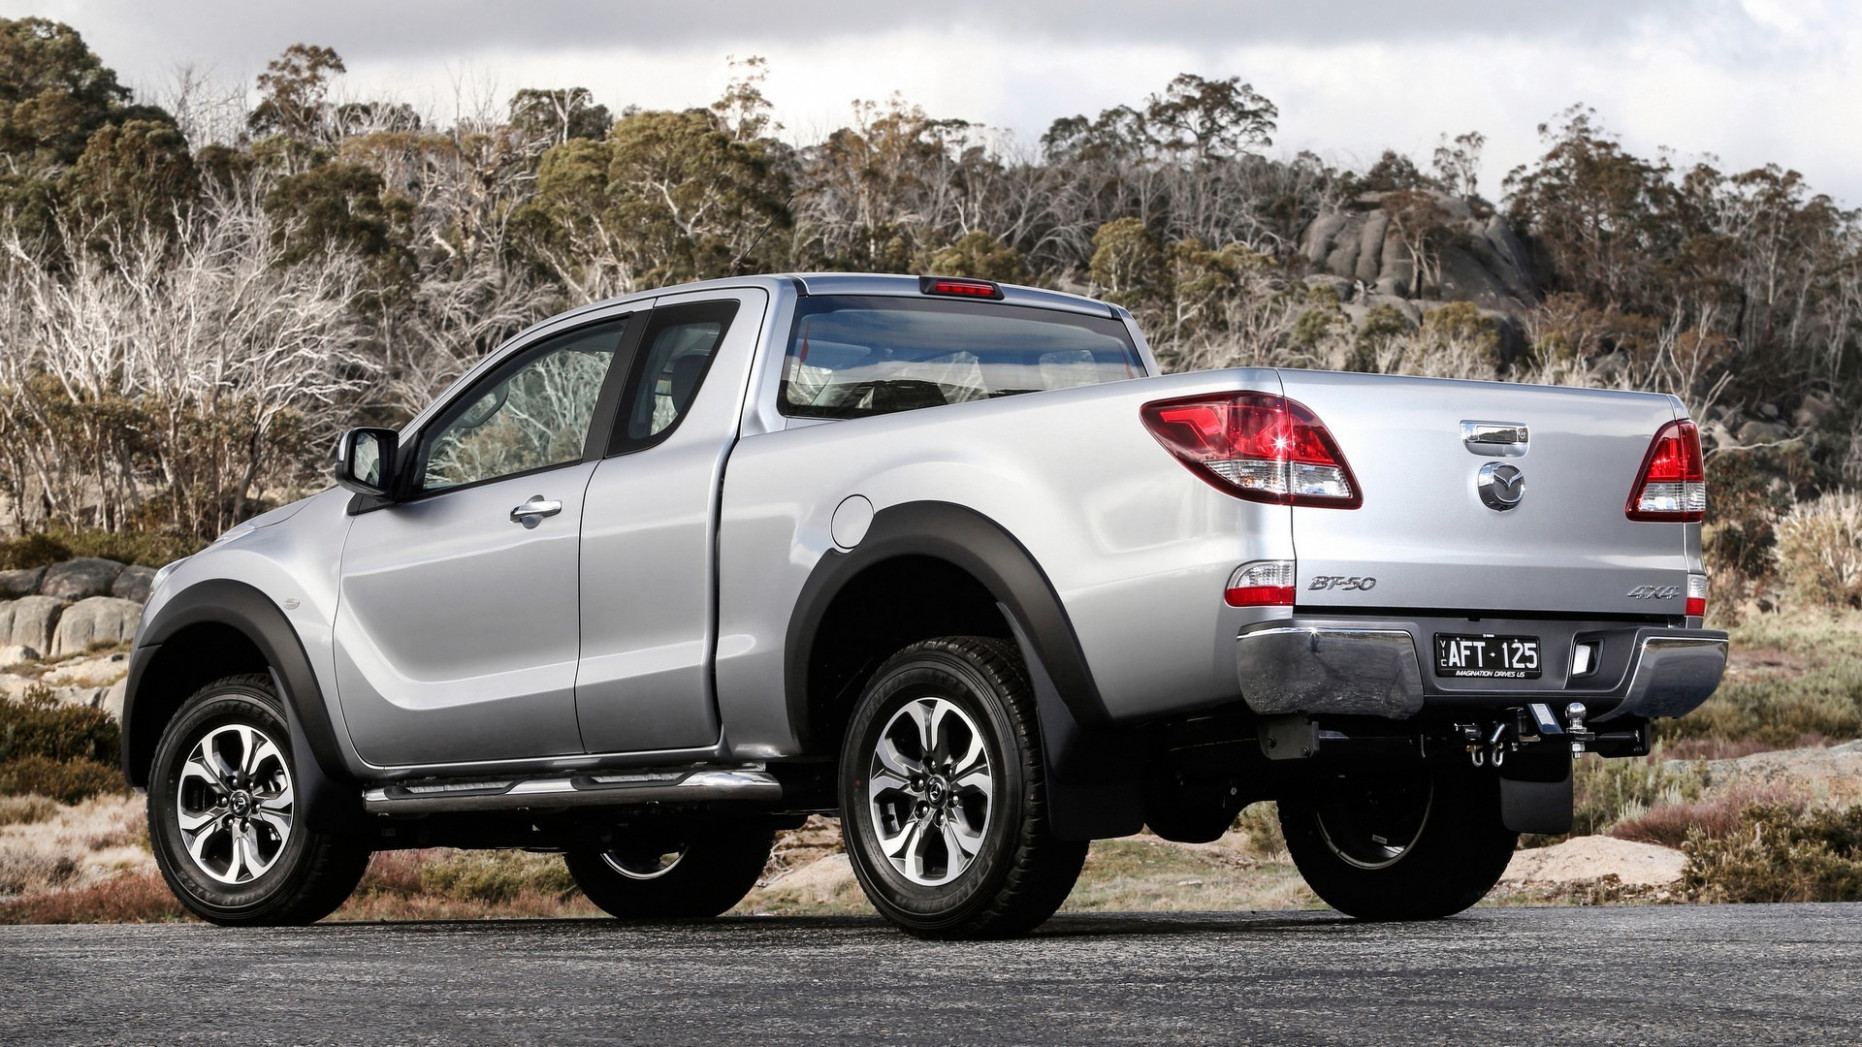 """Next-Gen Mazda Pickup Will Feature Beautiful But """"Manly"""" Design 